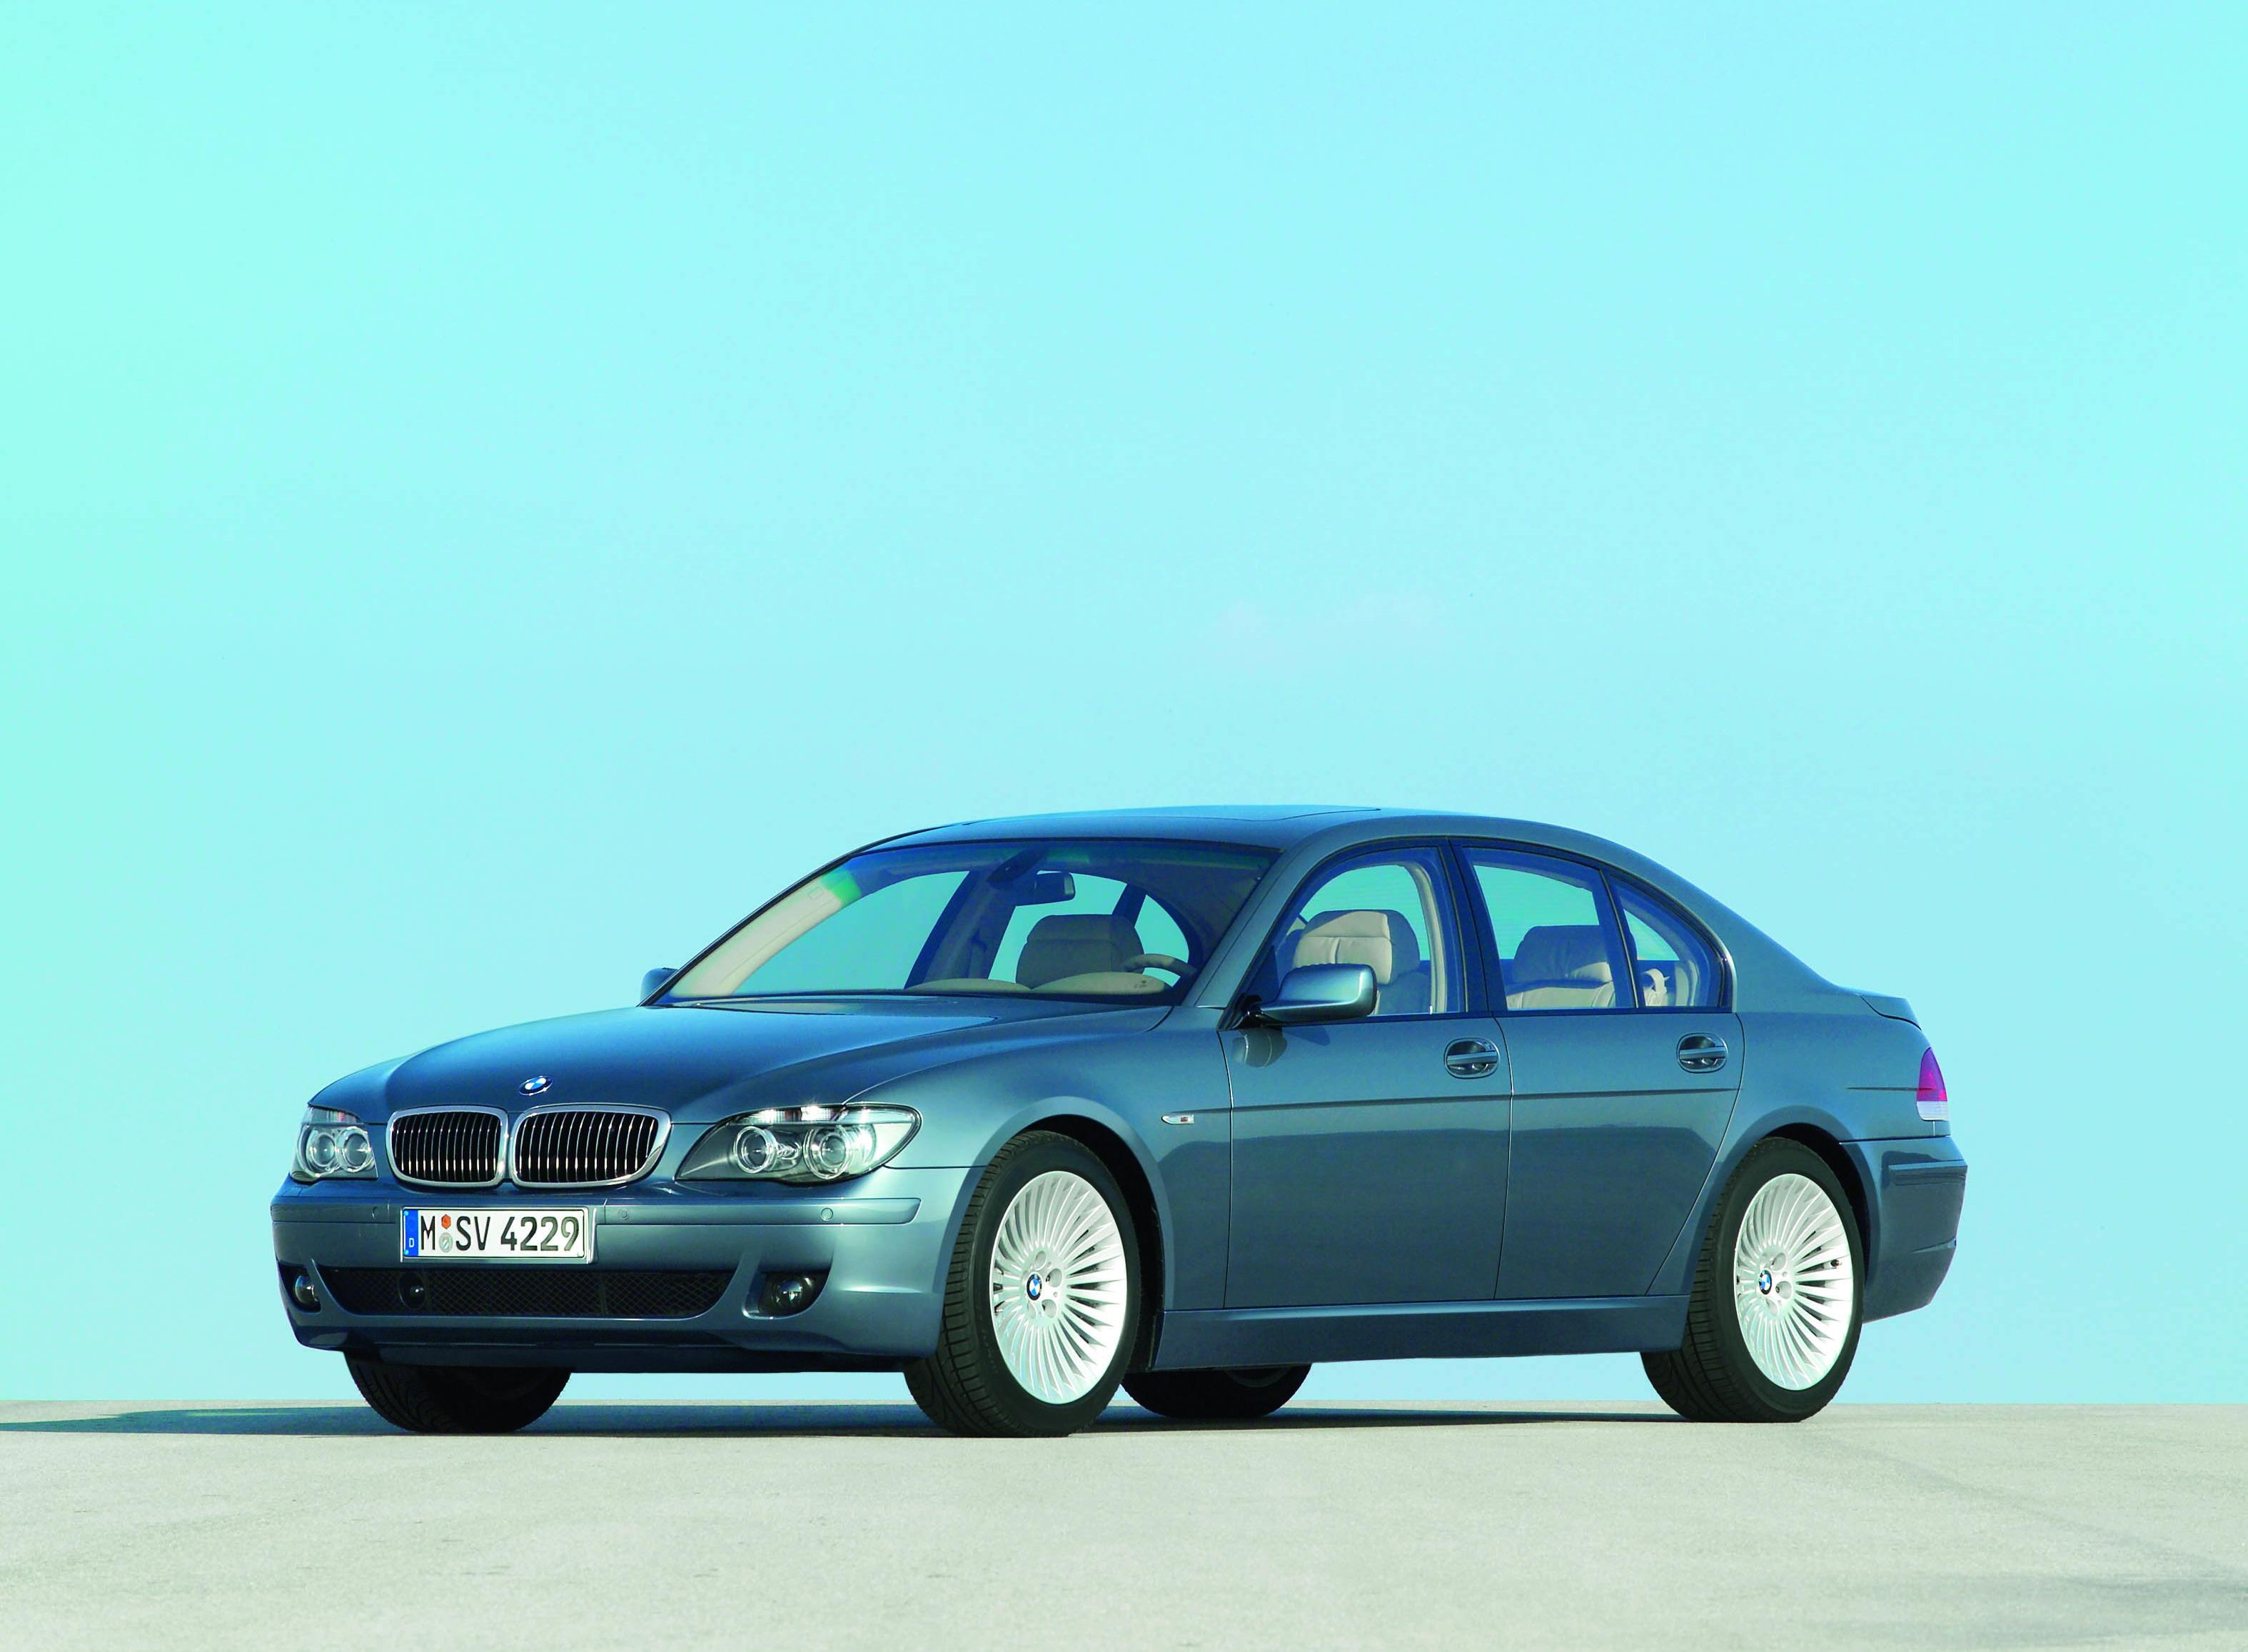 2007 BMW 7-Series Review - Top Speed